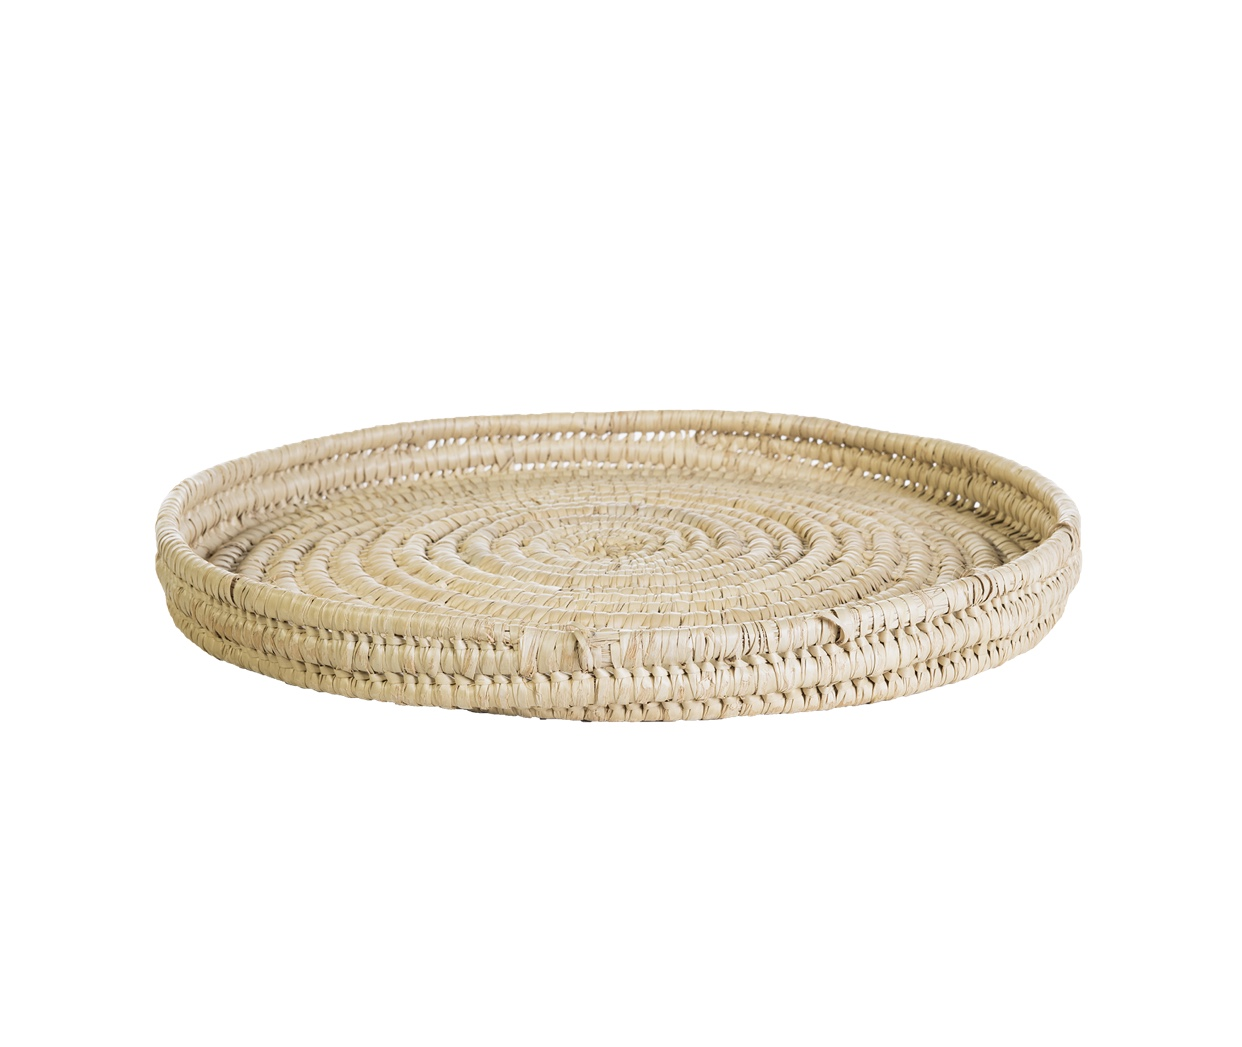 Brooke and Lou Woven Tray